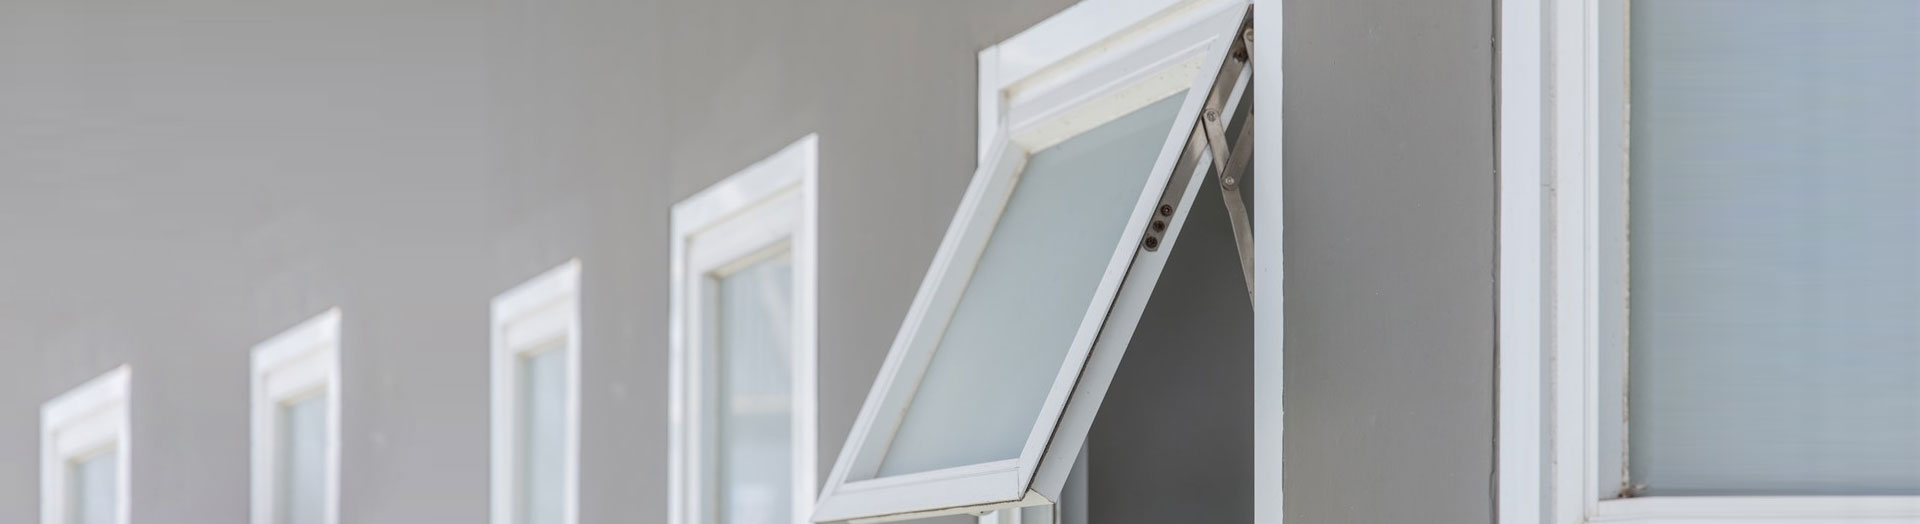 Awning Windows - window replacement by canpro